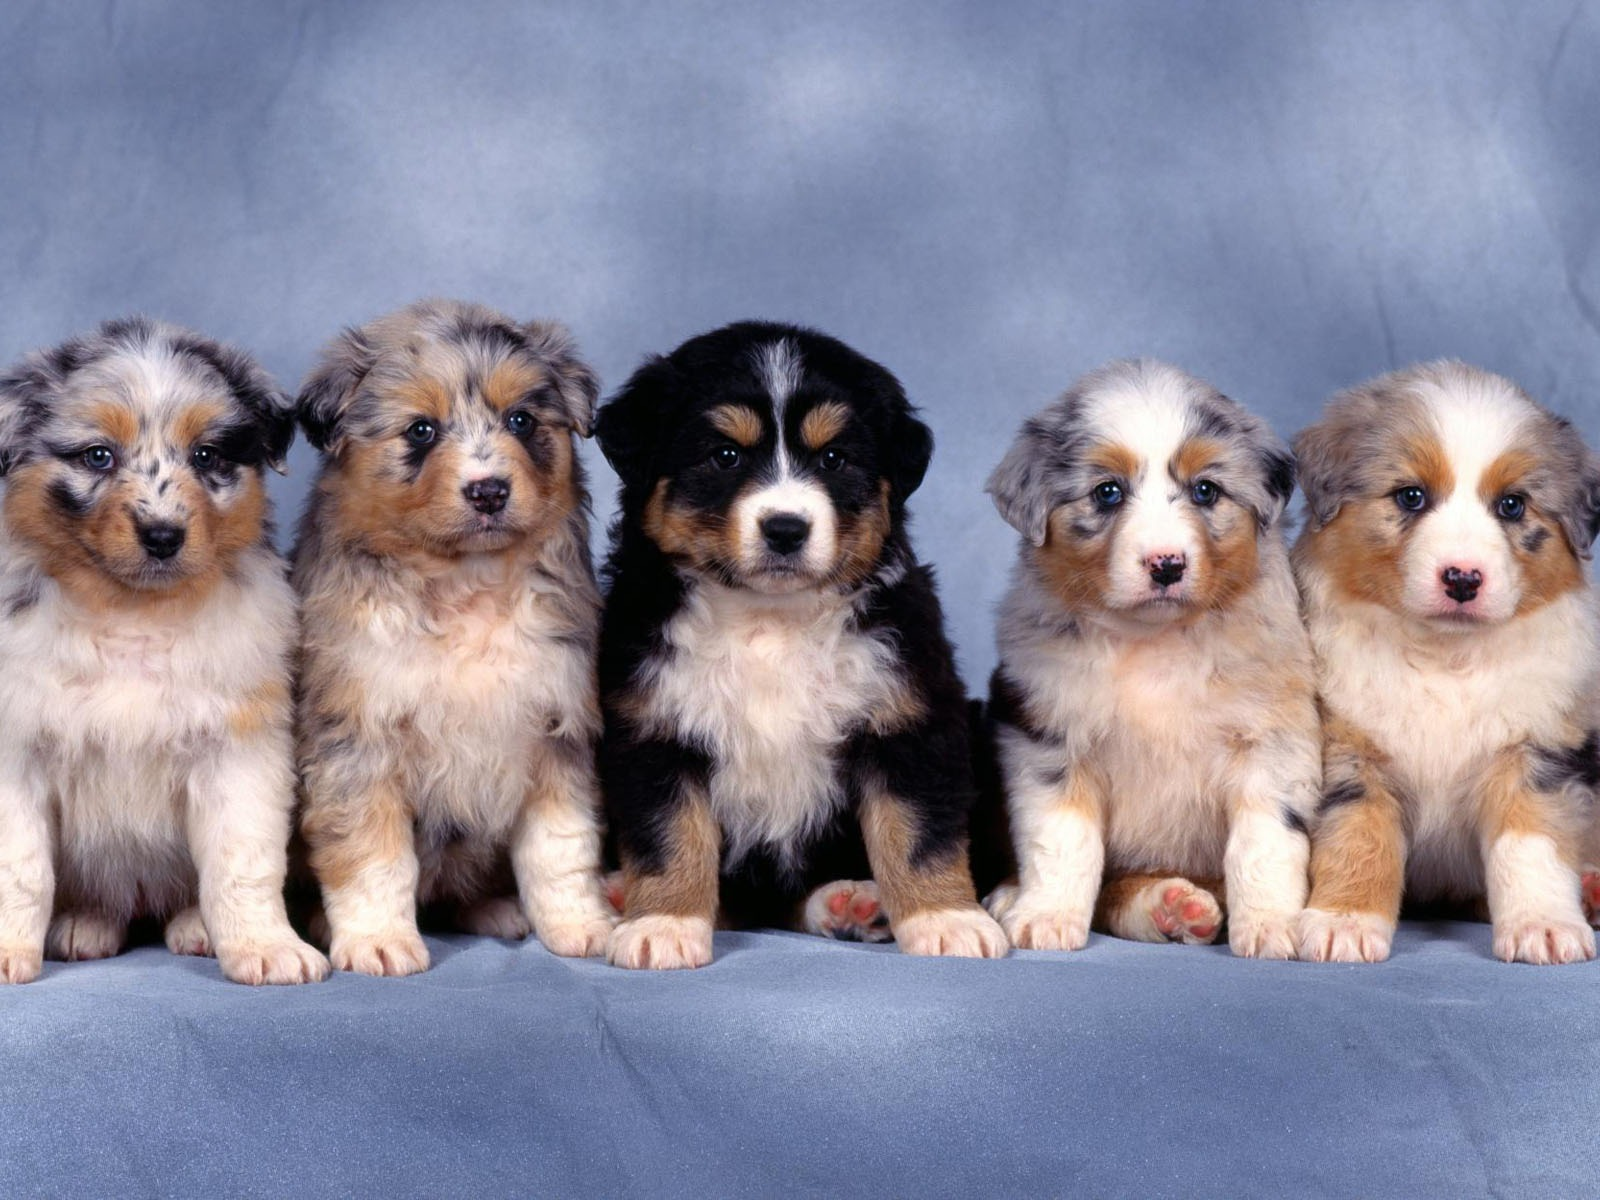 Puppy Photo HD wallpapers (1) #2 - 1600x1200